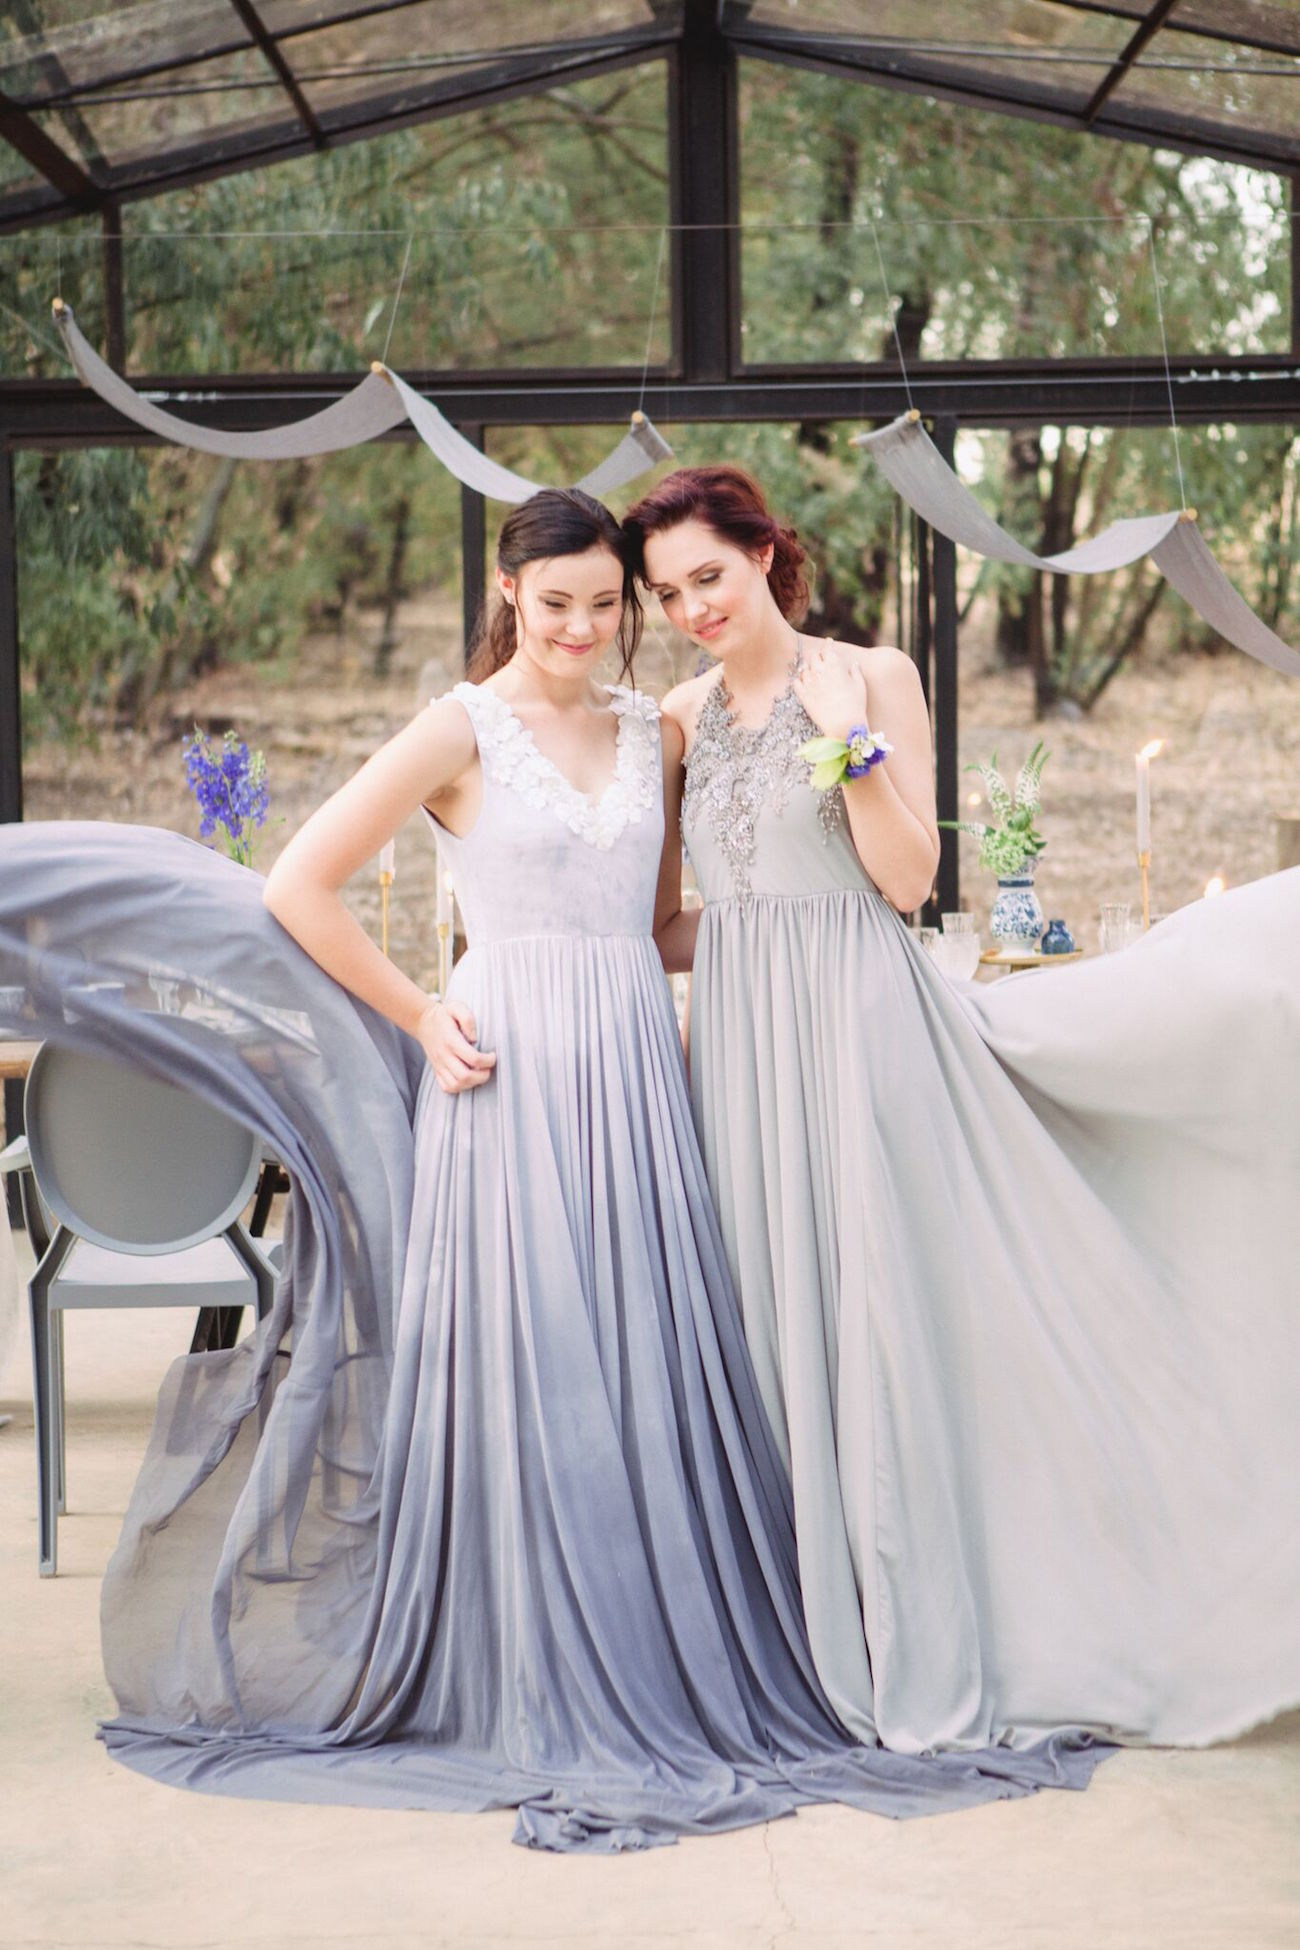 Silver Swallow Blue and Grey Wedding Dresses | Credit: Dust & Dreams Photography